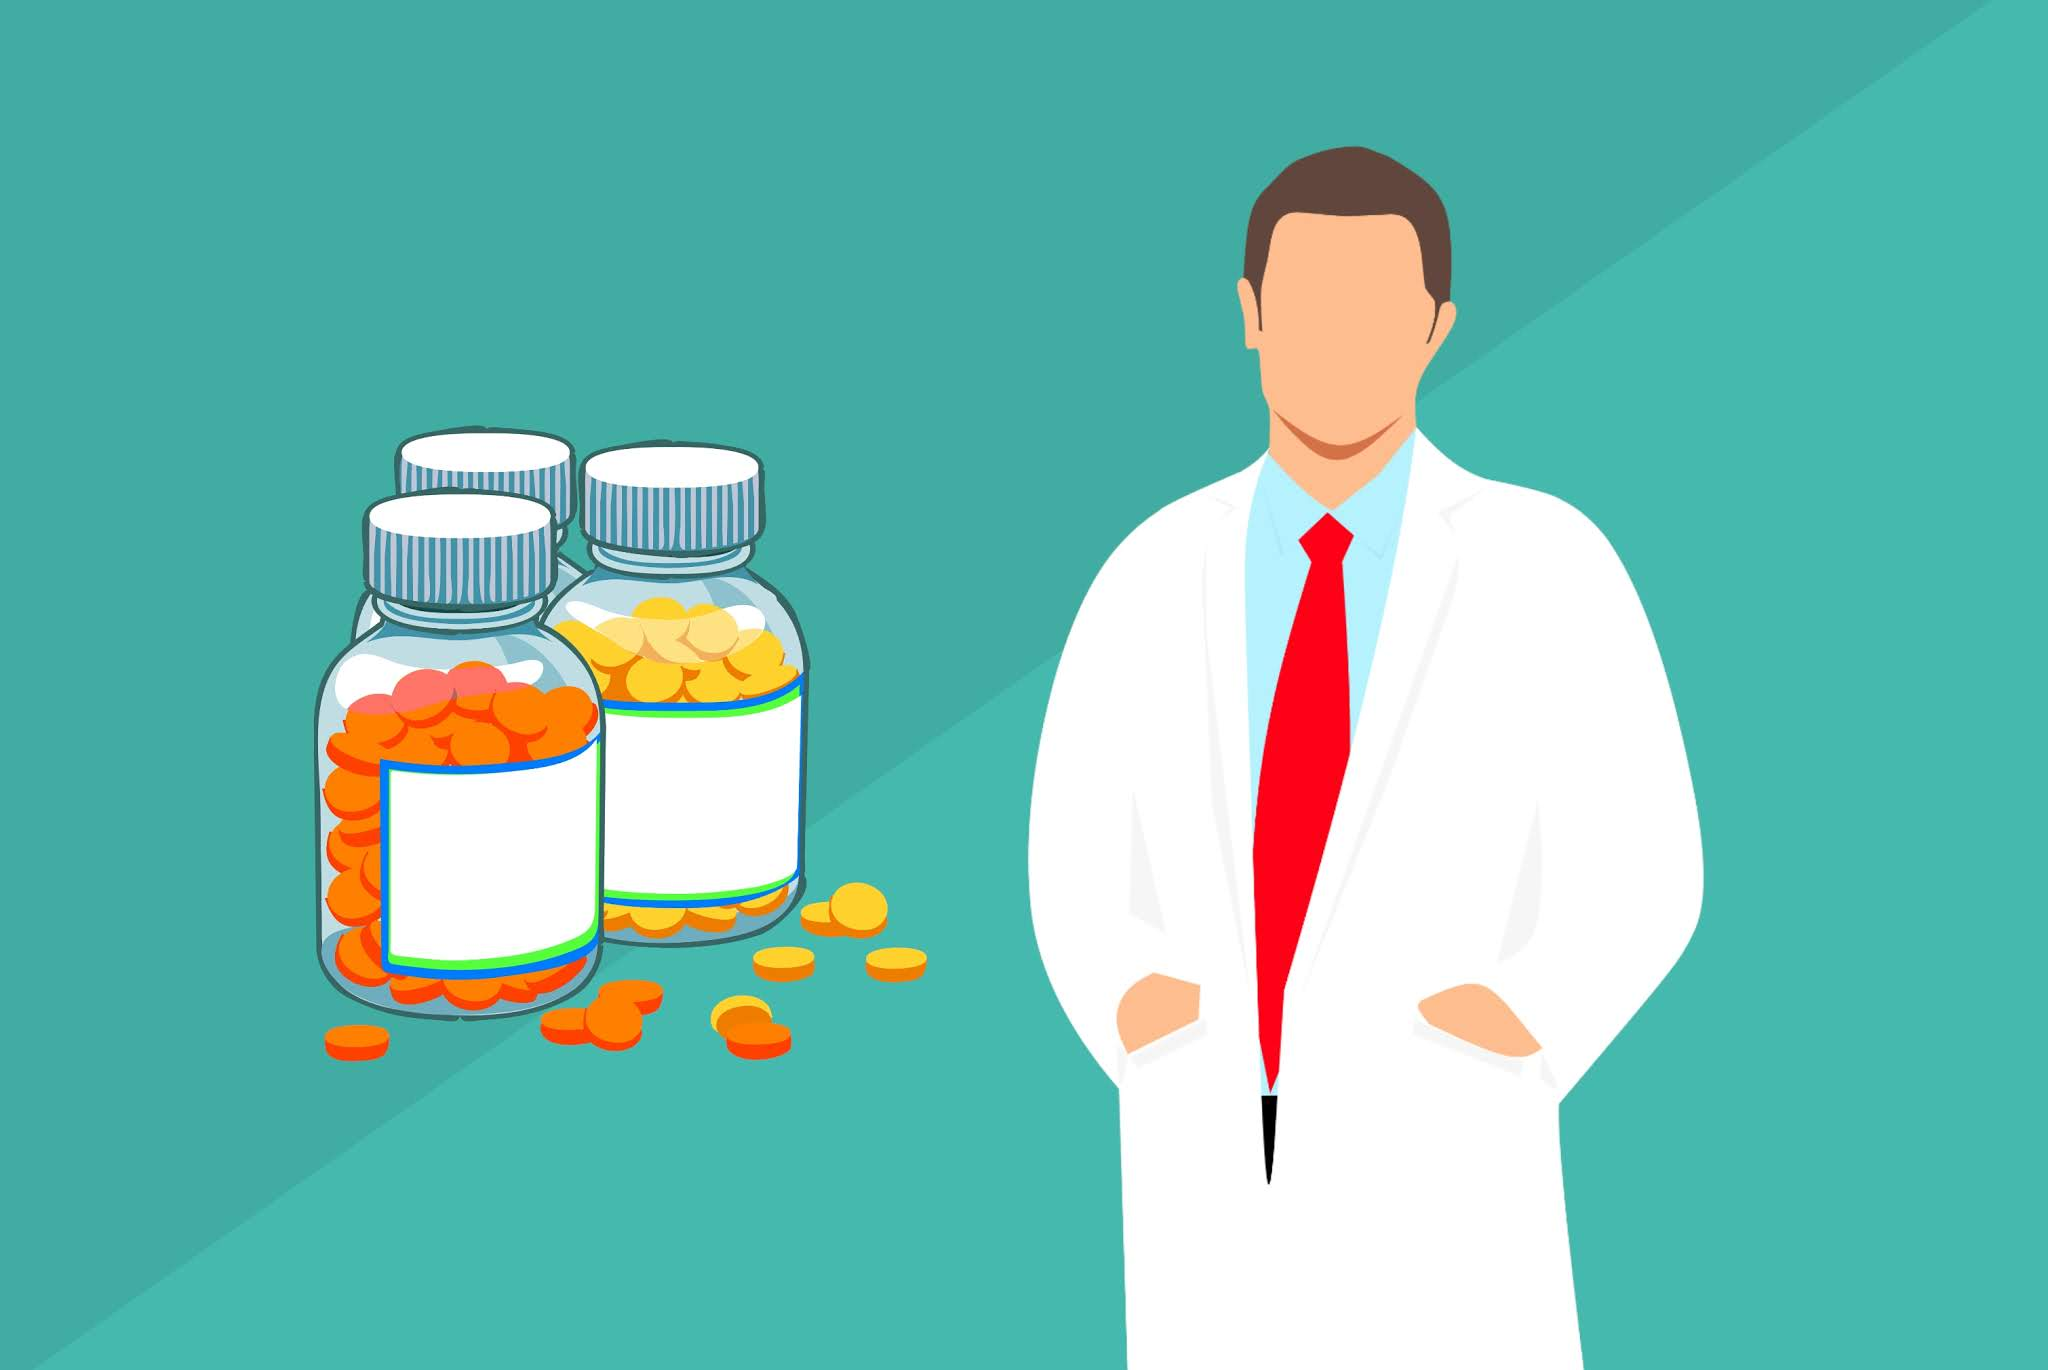 Pharmacist and pills illustration. Image credit: Mohamed Hassan, StockVault